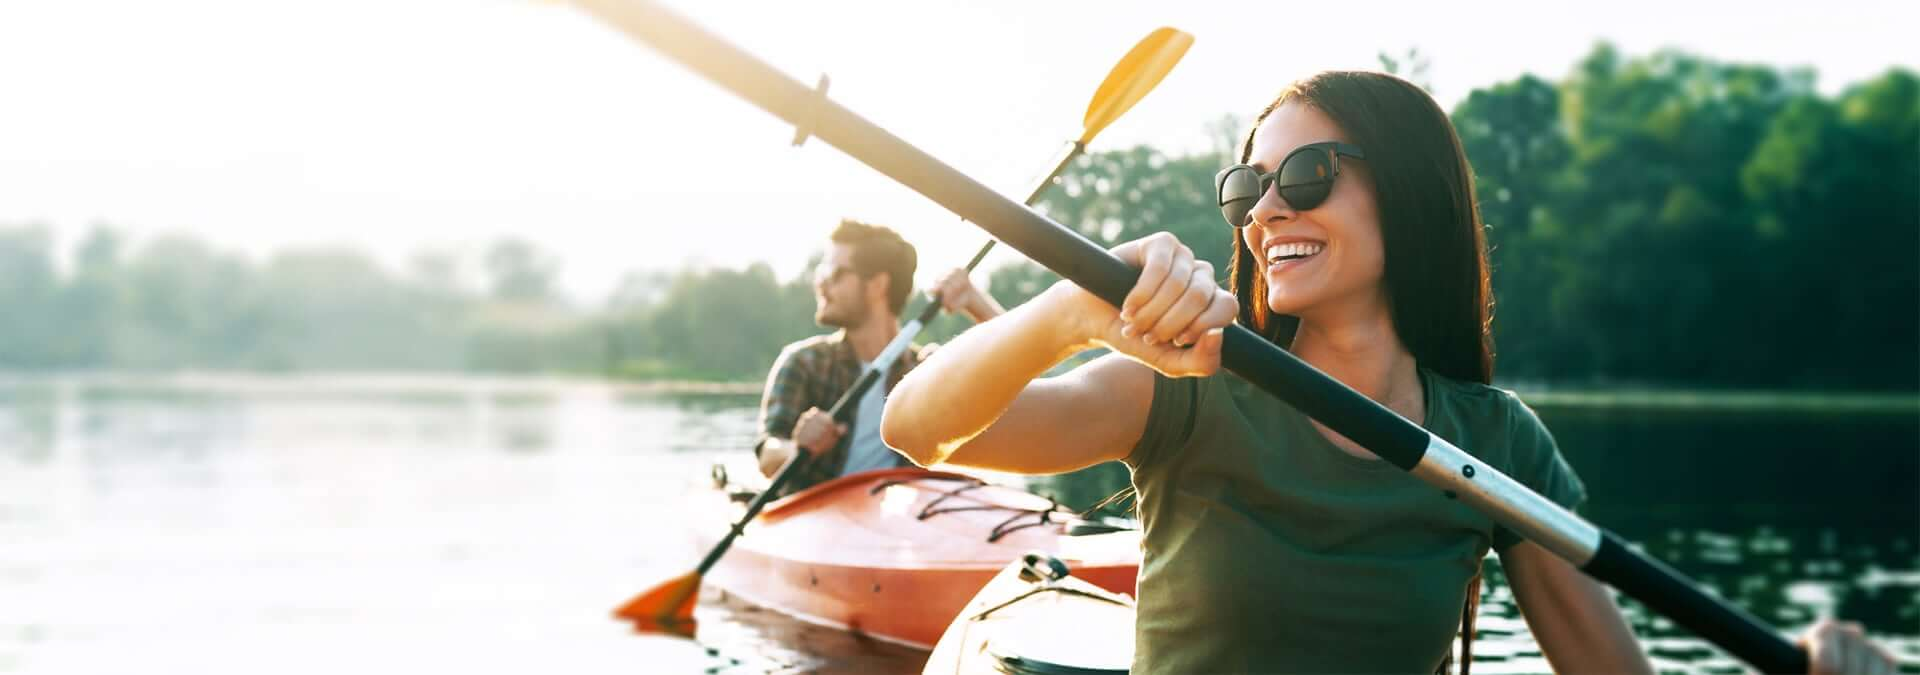 healthy lifestyle kayak